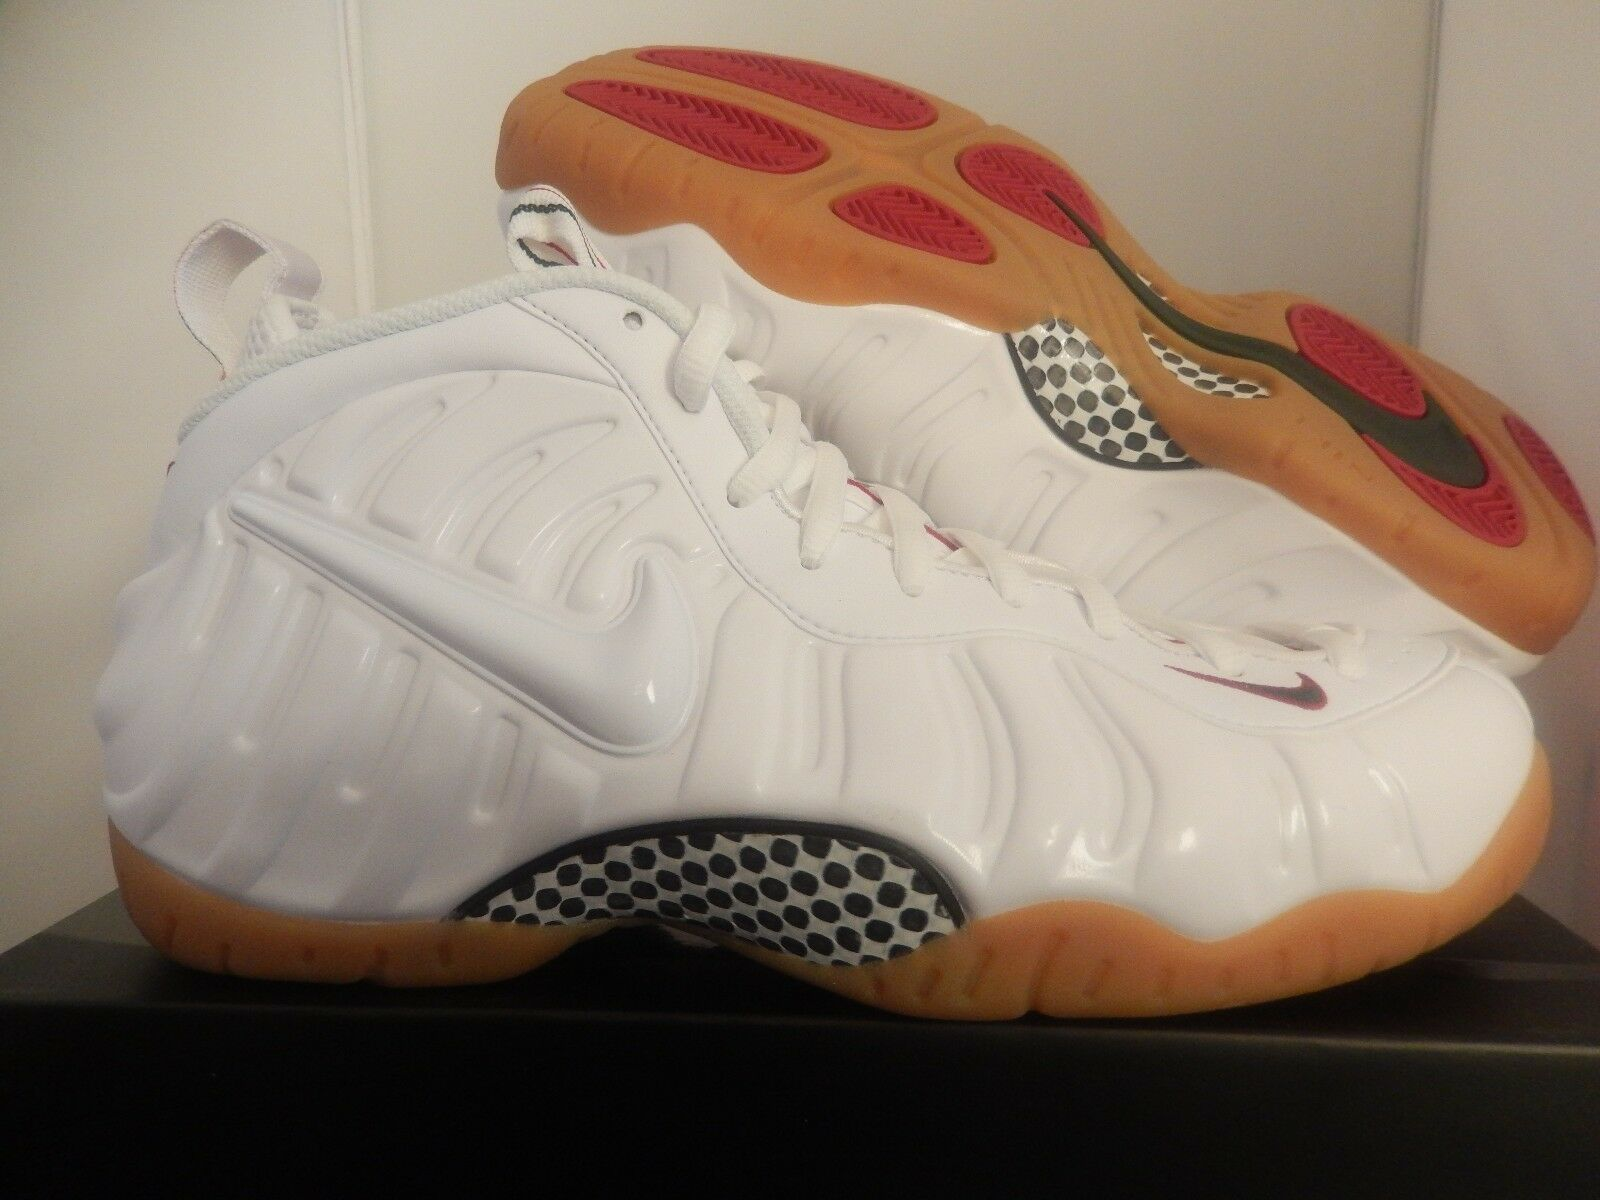 NIKE AIR FOAMPOSITE PRO WHITE-GYM [624041-102] RED-GREEN SZ 10 [624041-102] WHITE-GYM f999cb